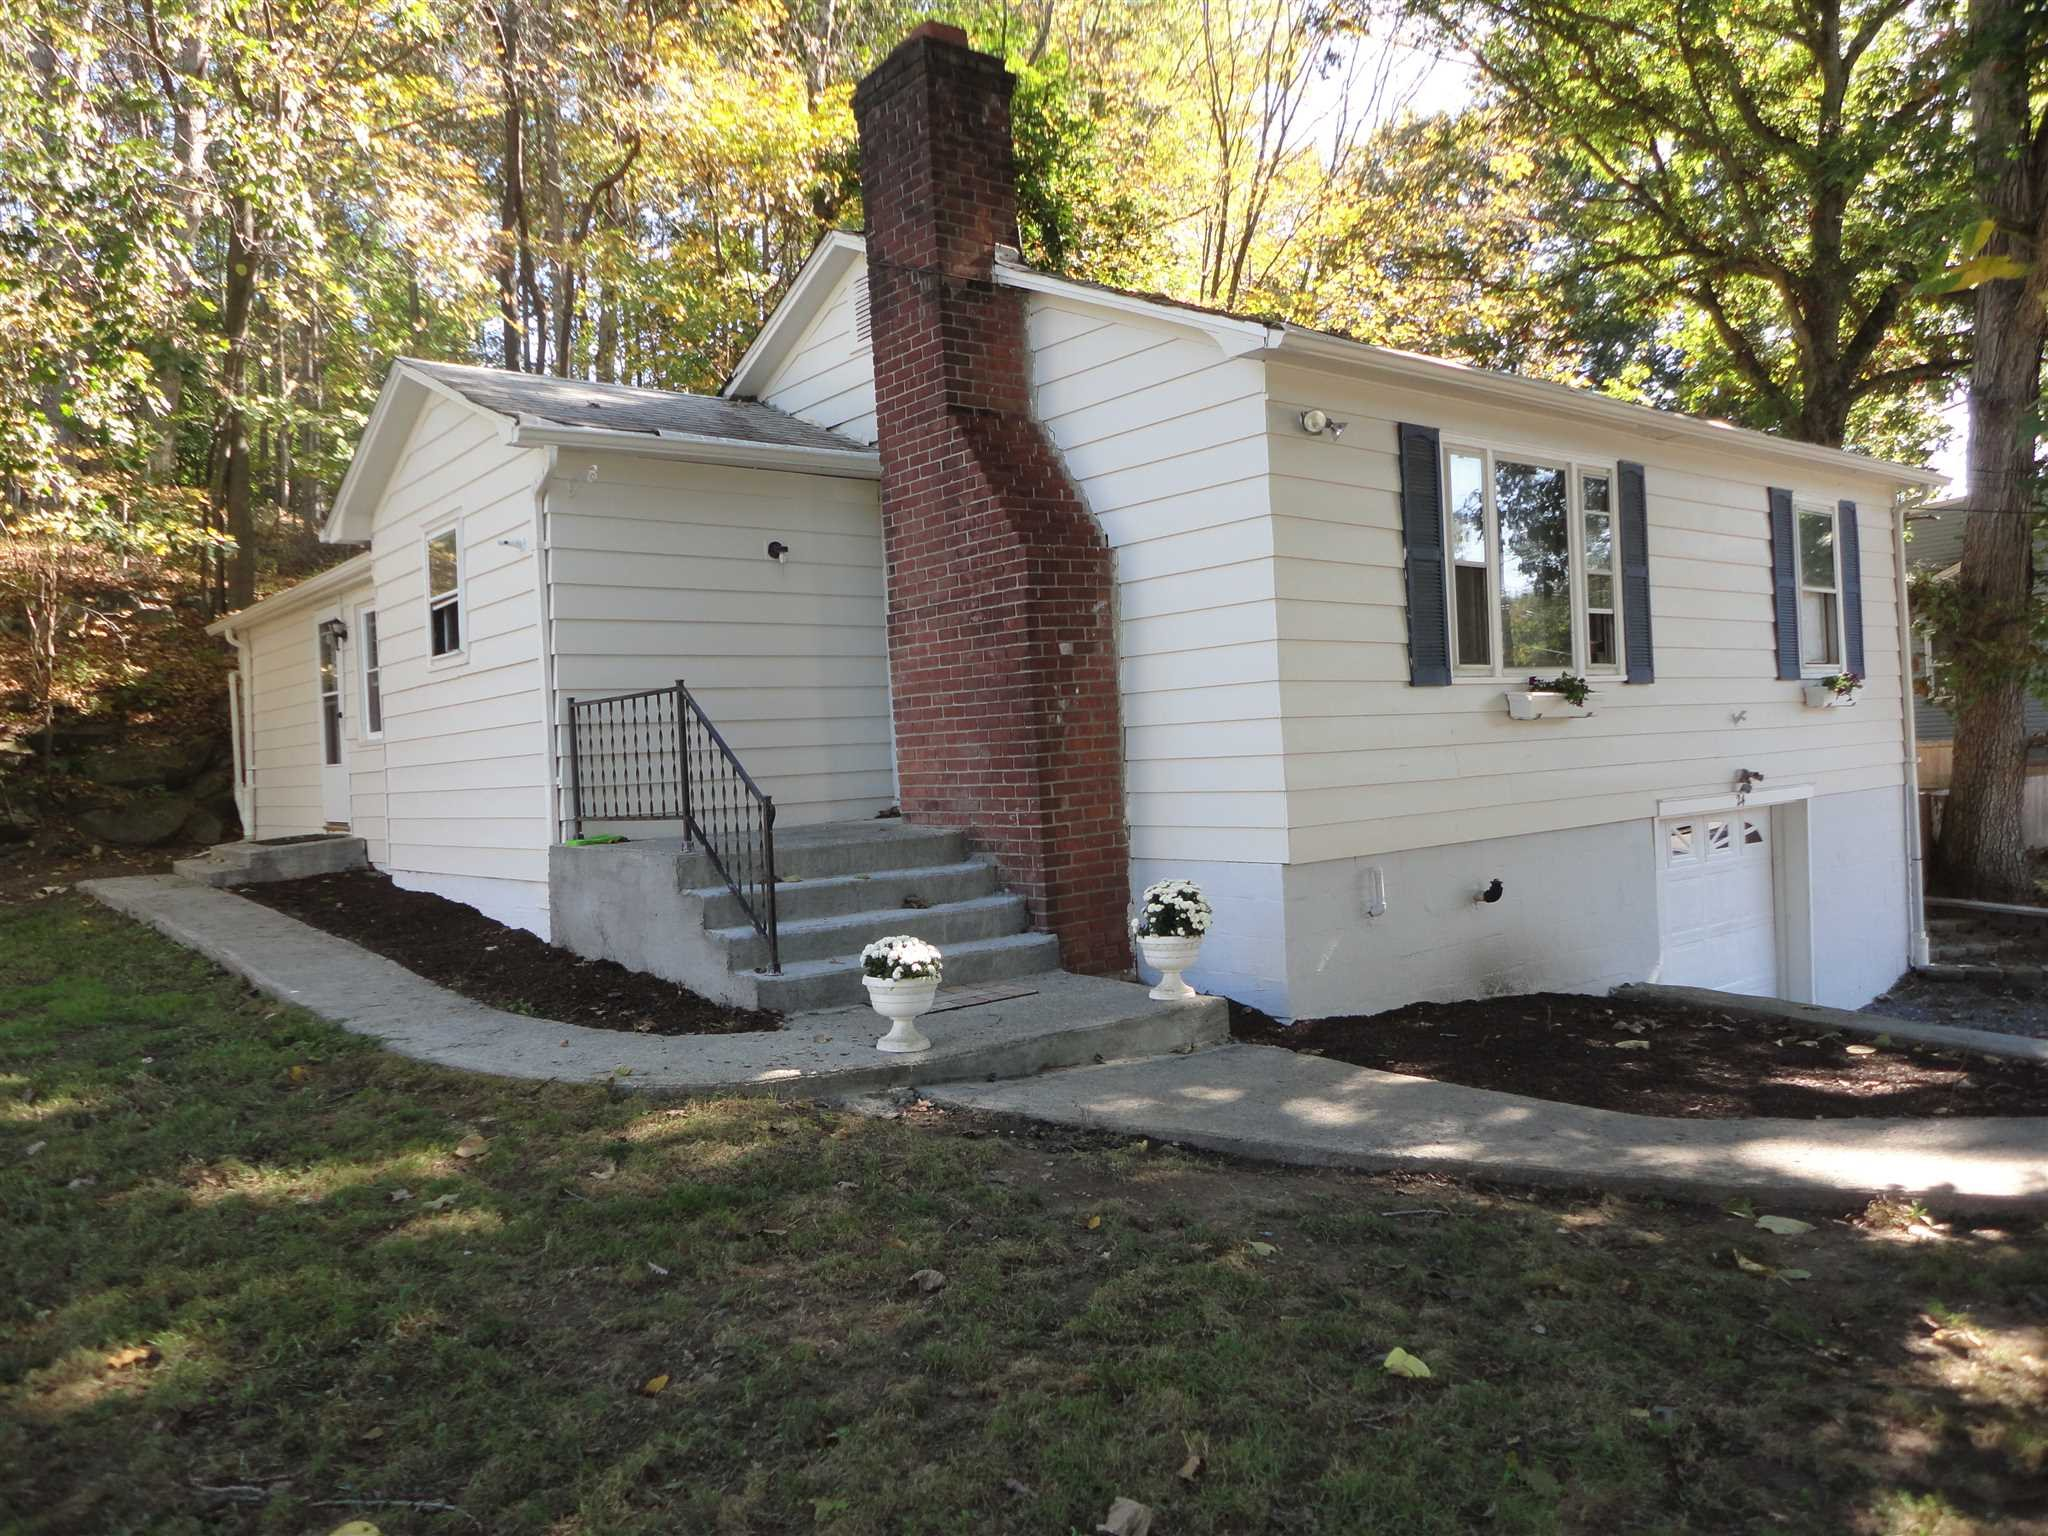 Single Family Home for Sale at 24 HOLT 24 HOLT Hyde Park, New York 12538 United States